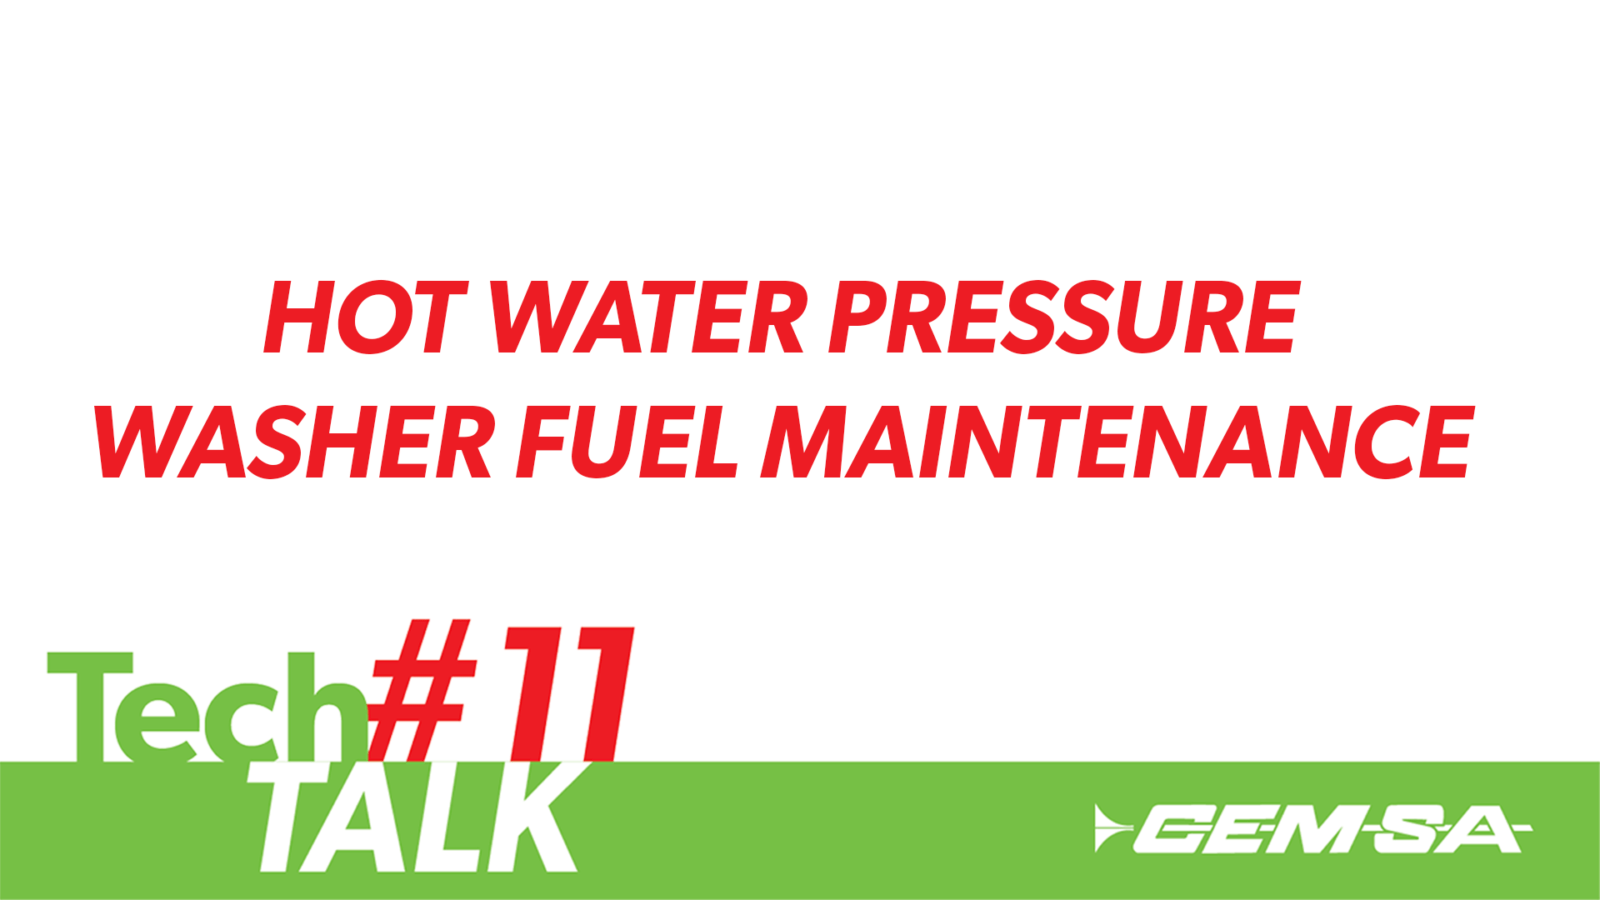 TechTalk #11- Hot Water Pressure Washer Fuel Maintenance